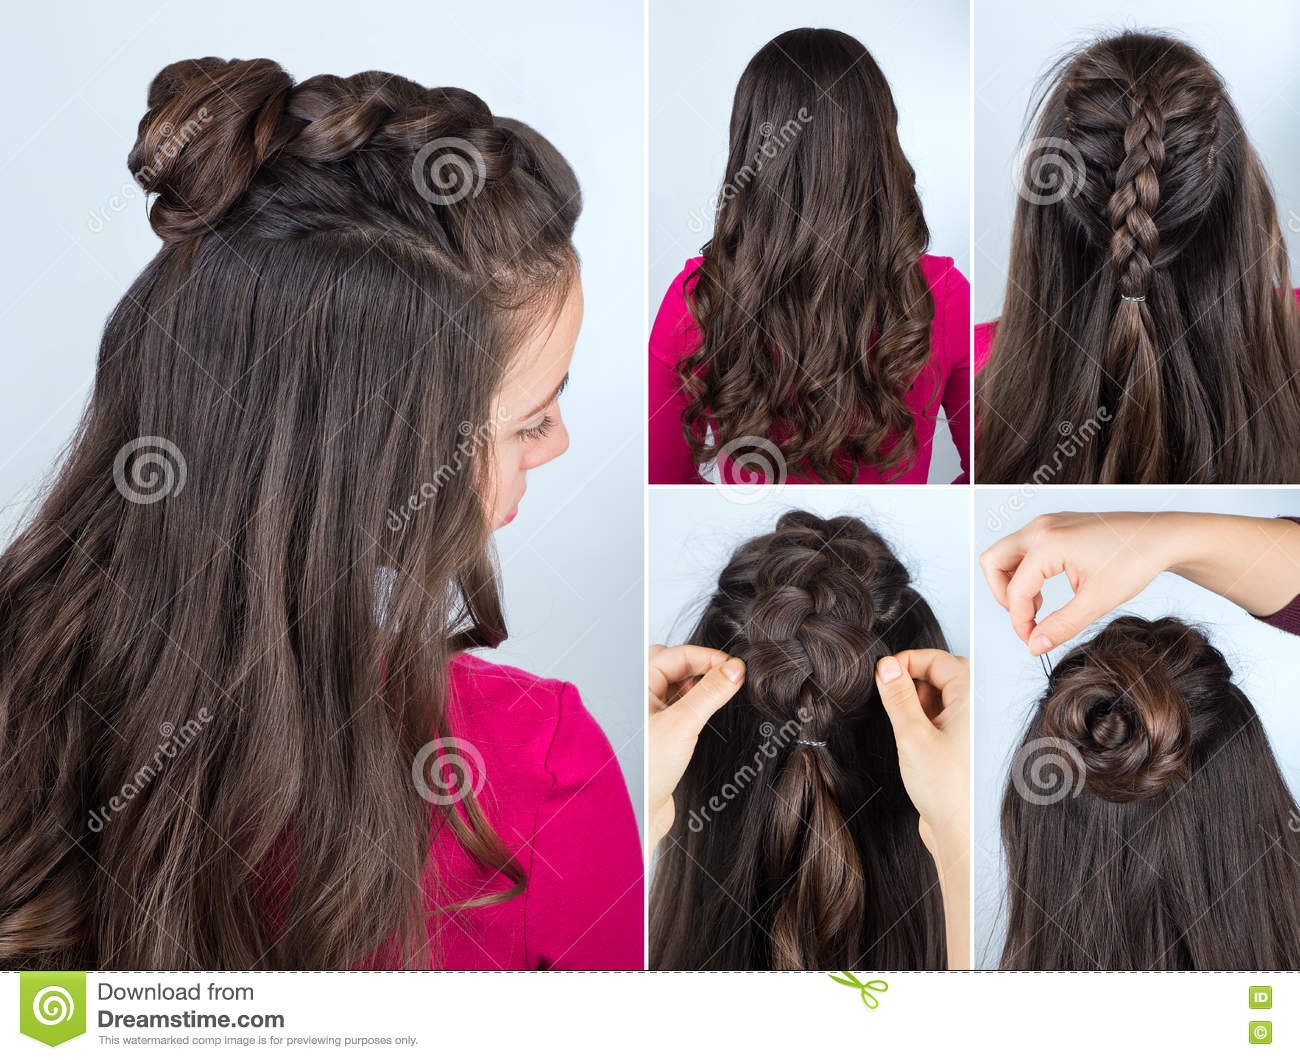 Hairstyle Bun With Plait Tutorial Stock Image Image Of Fashion